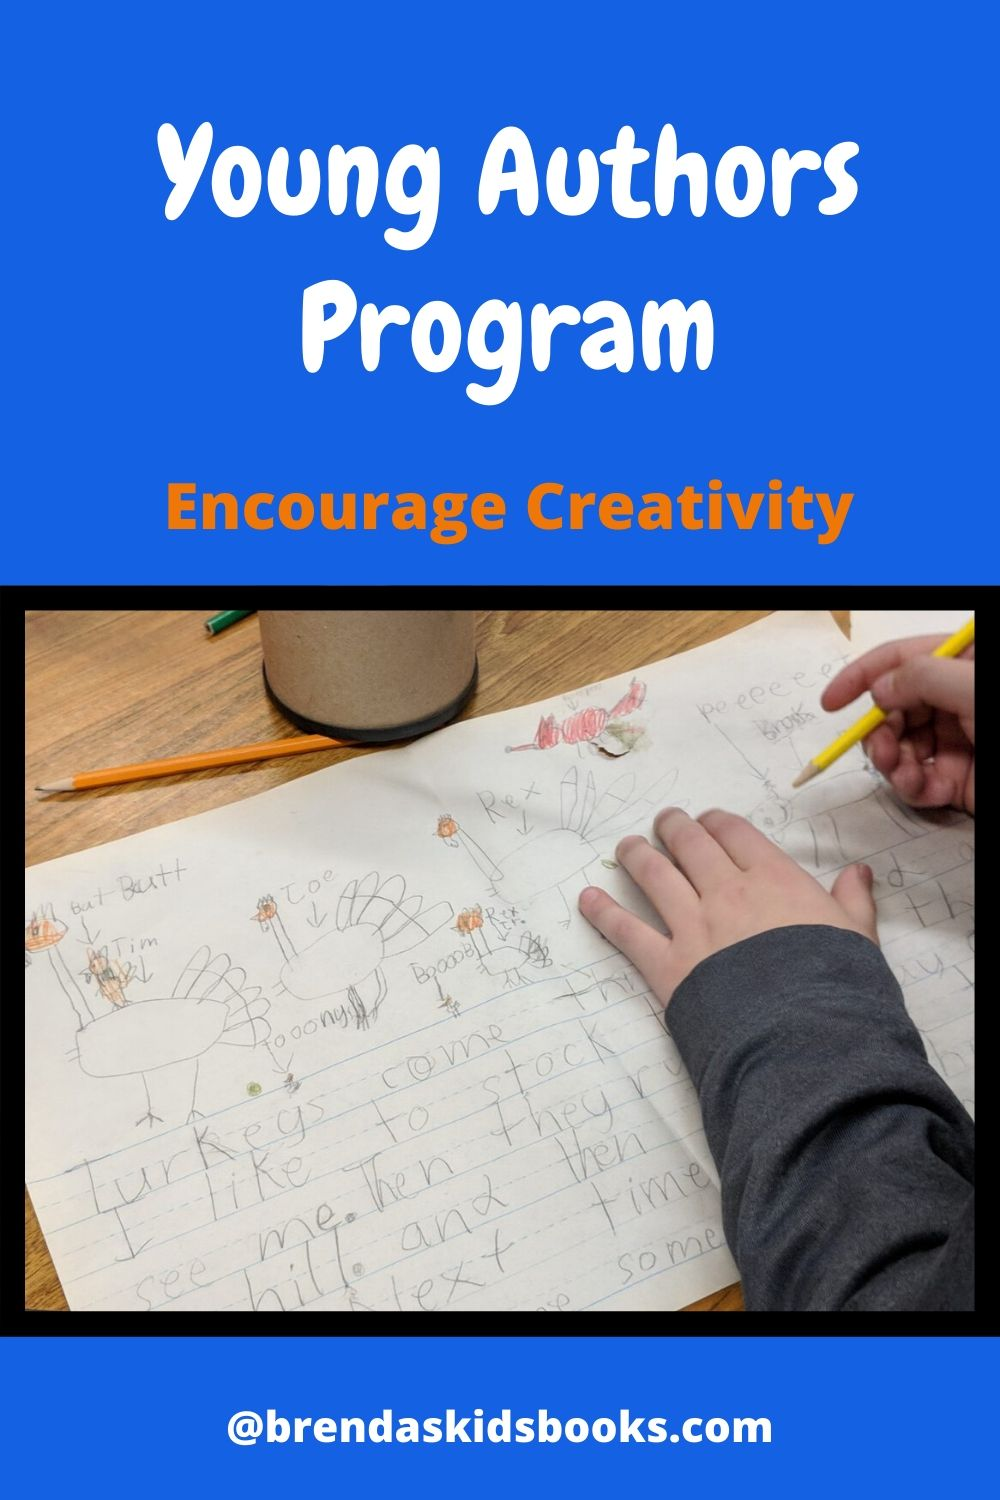 Young Authors Program, encourage creativity, Brenda's Kids Books, Child hands on a desk and the story he is writing.